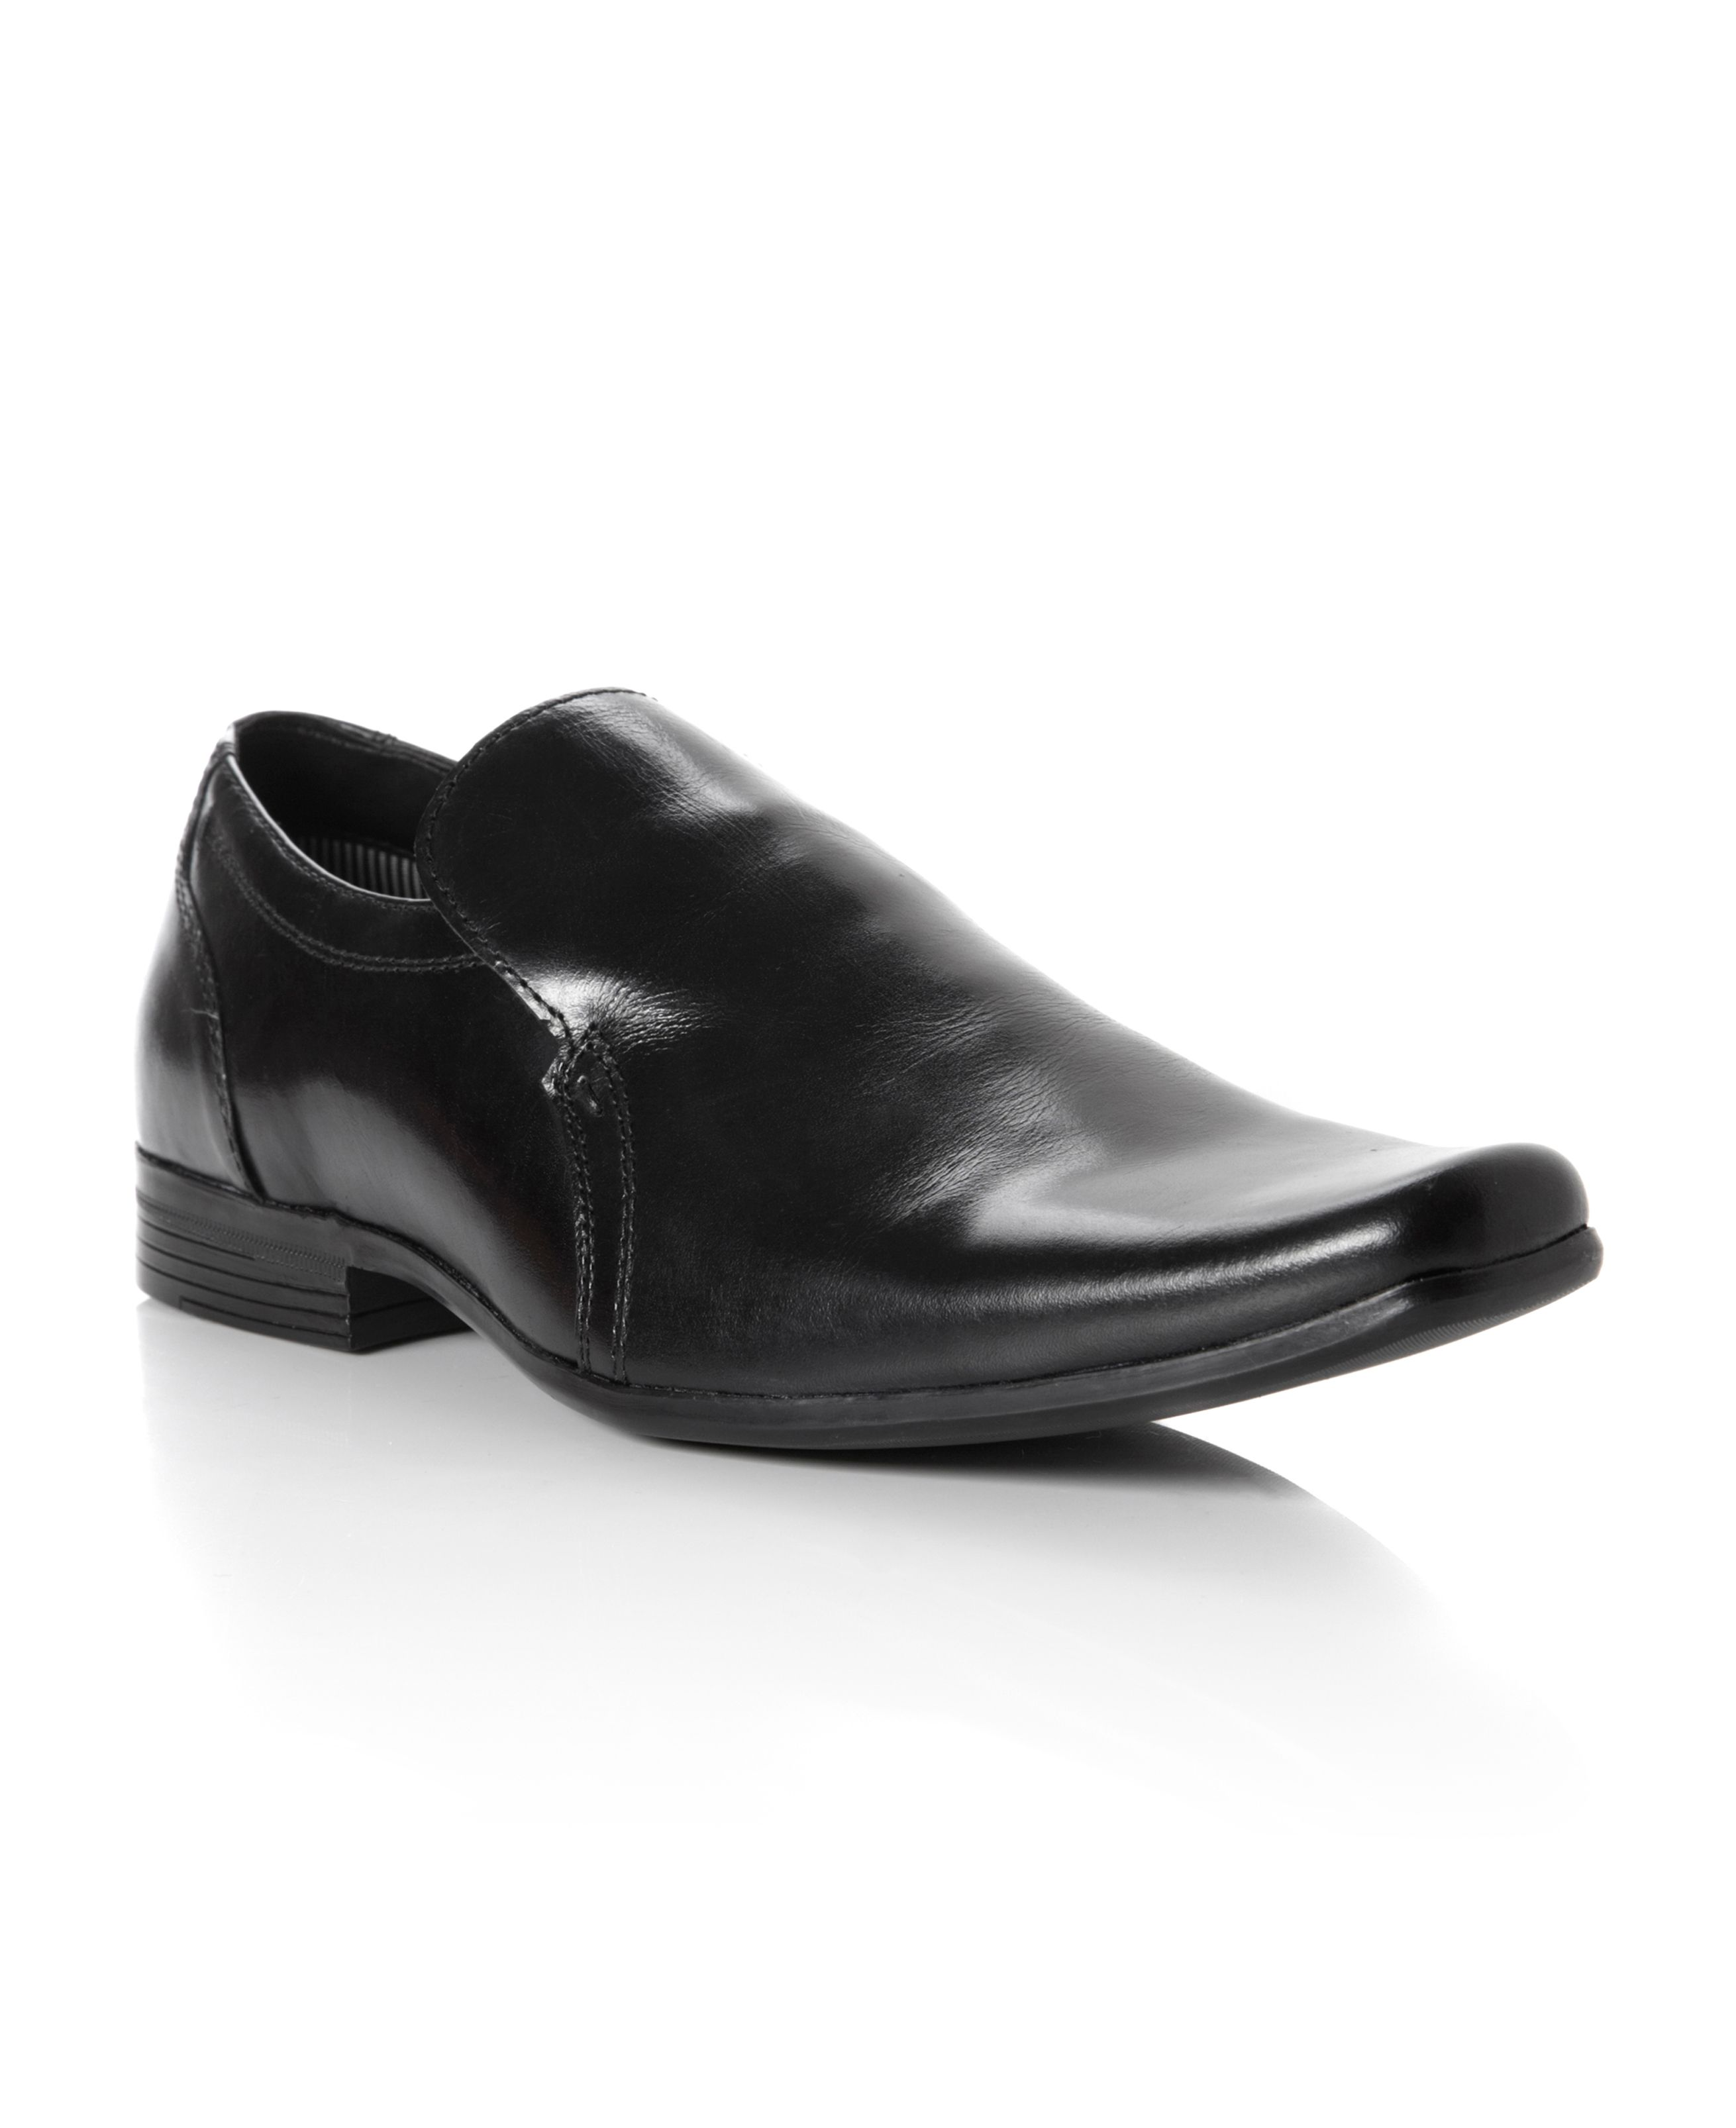 Acer square toe loafers